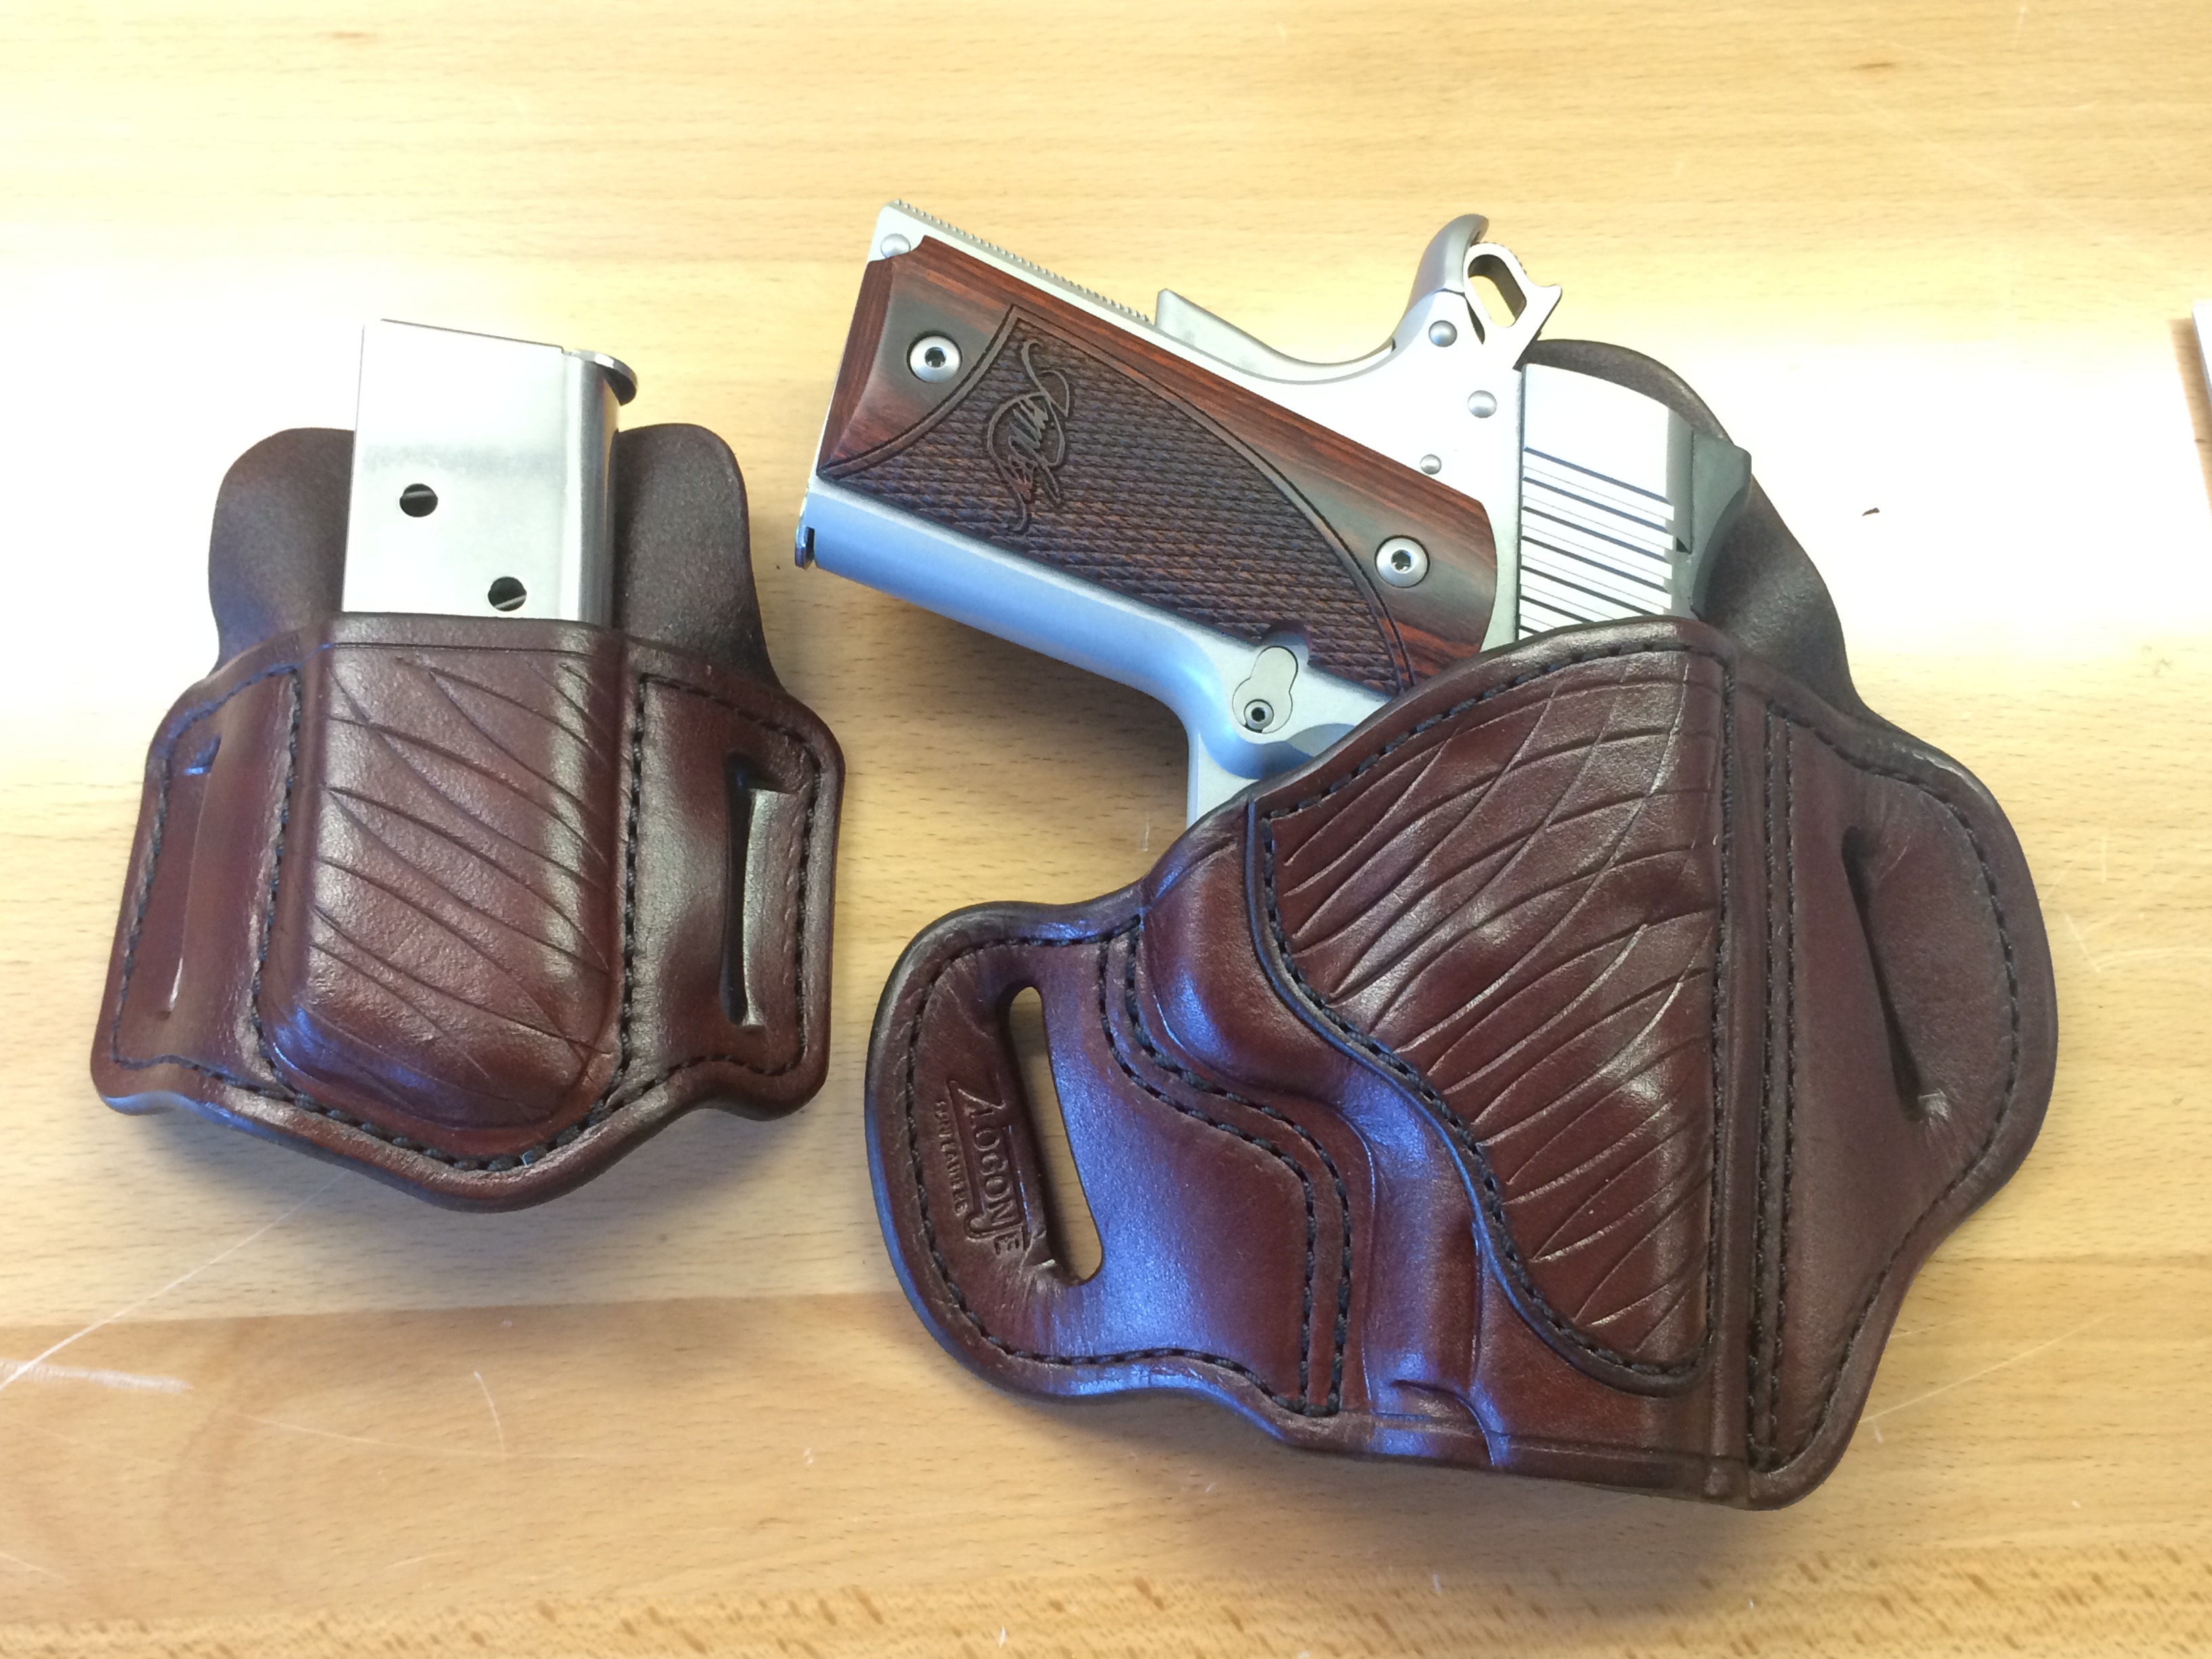 1911 holster ideas - Page 3